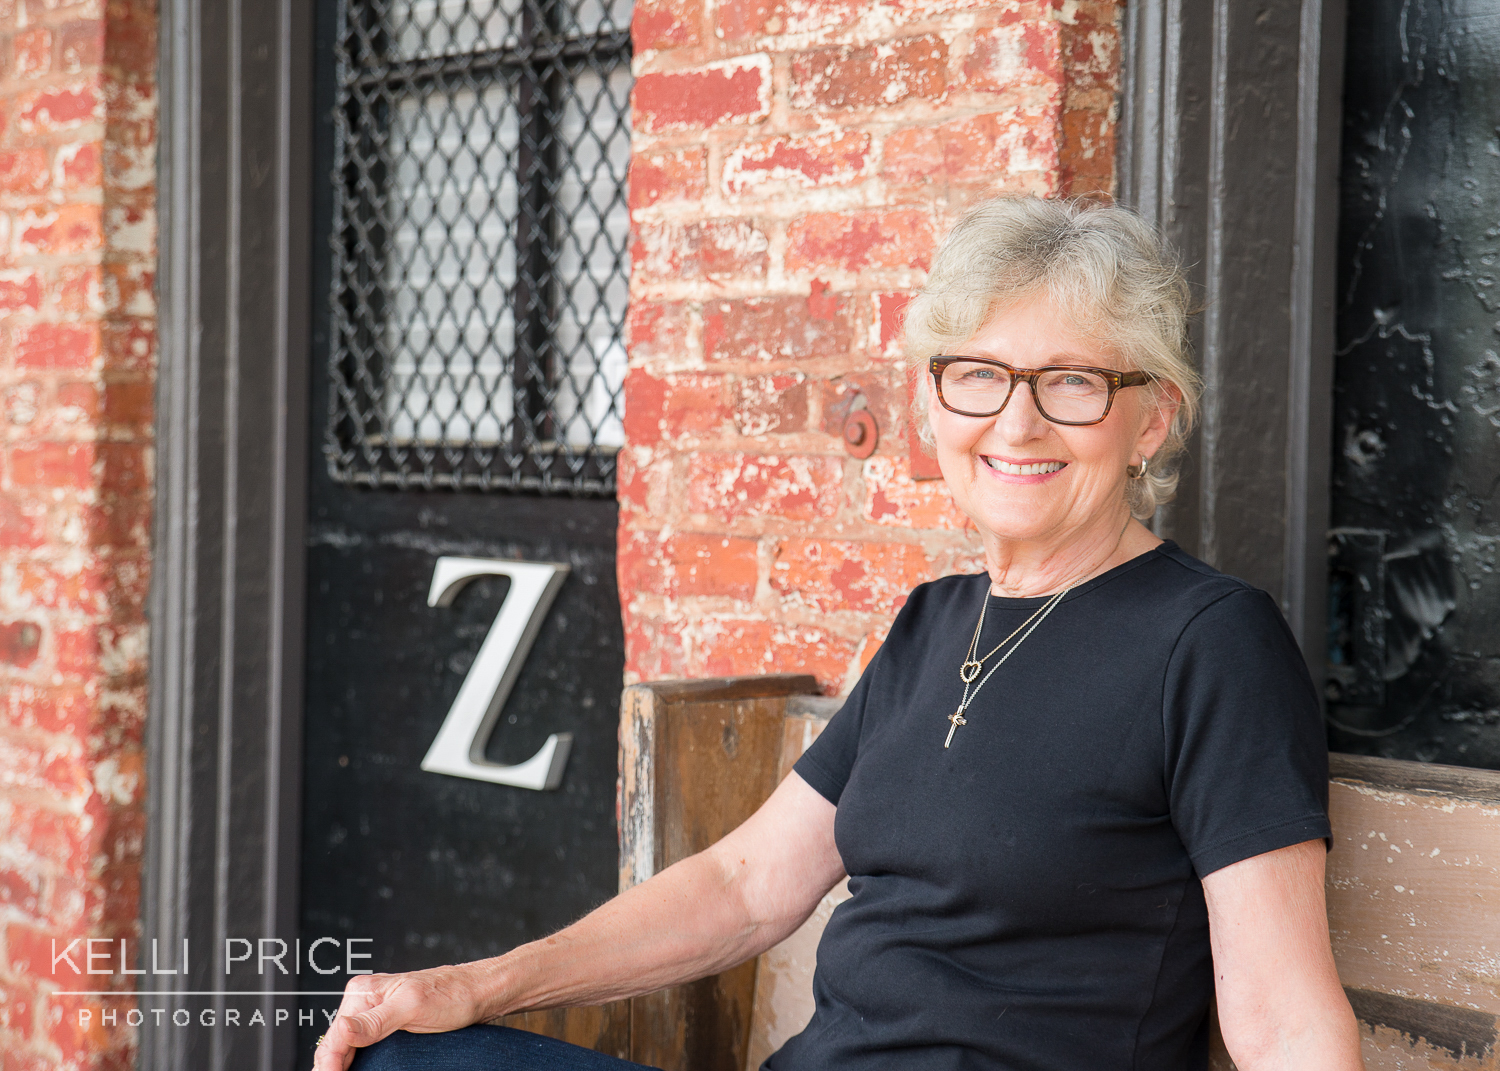 Cathy outside her studio, Studio Z. Click on the image to learn more about Cathy.